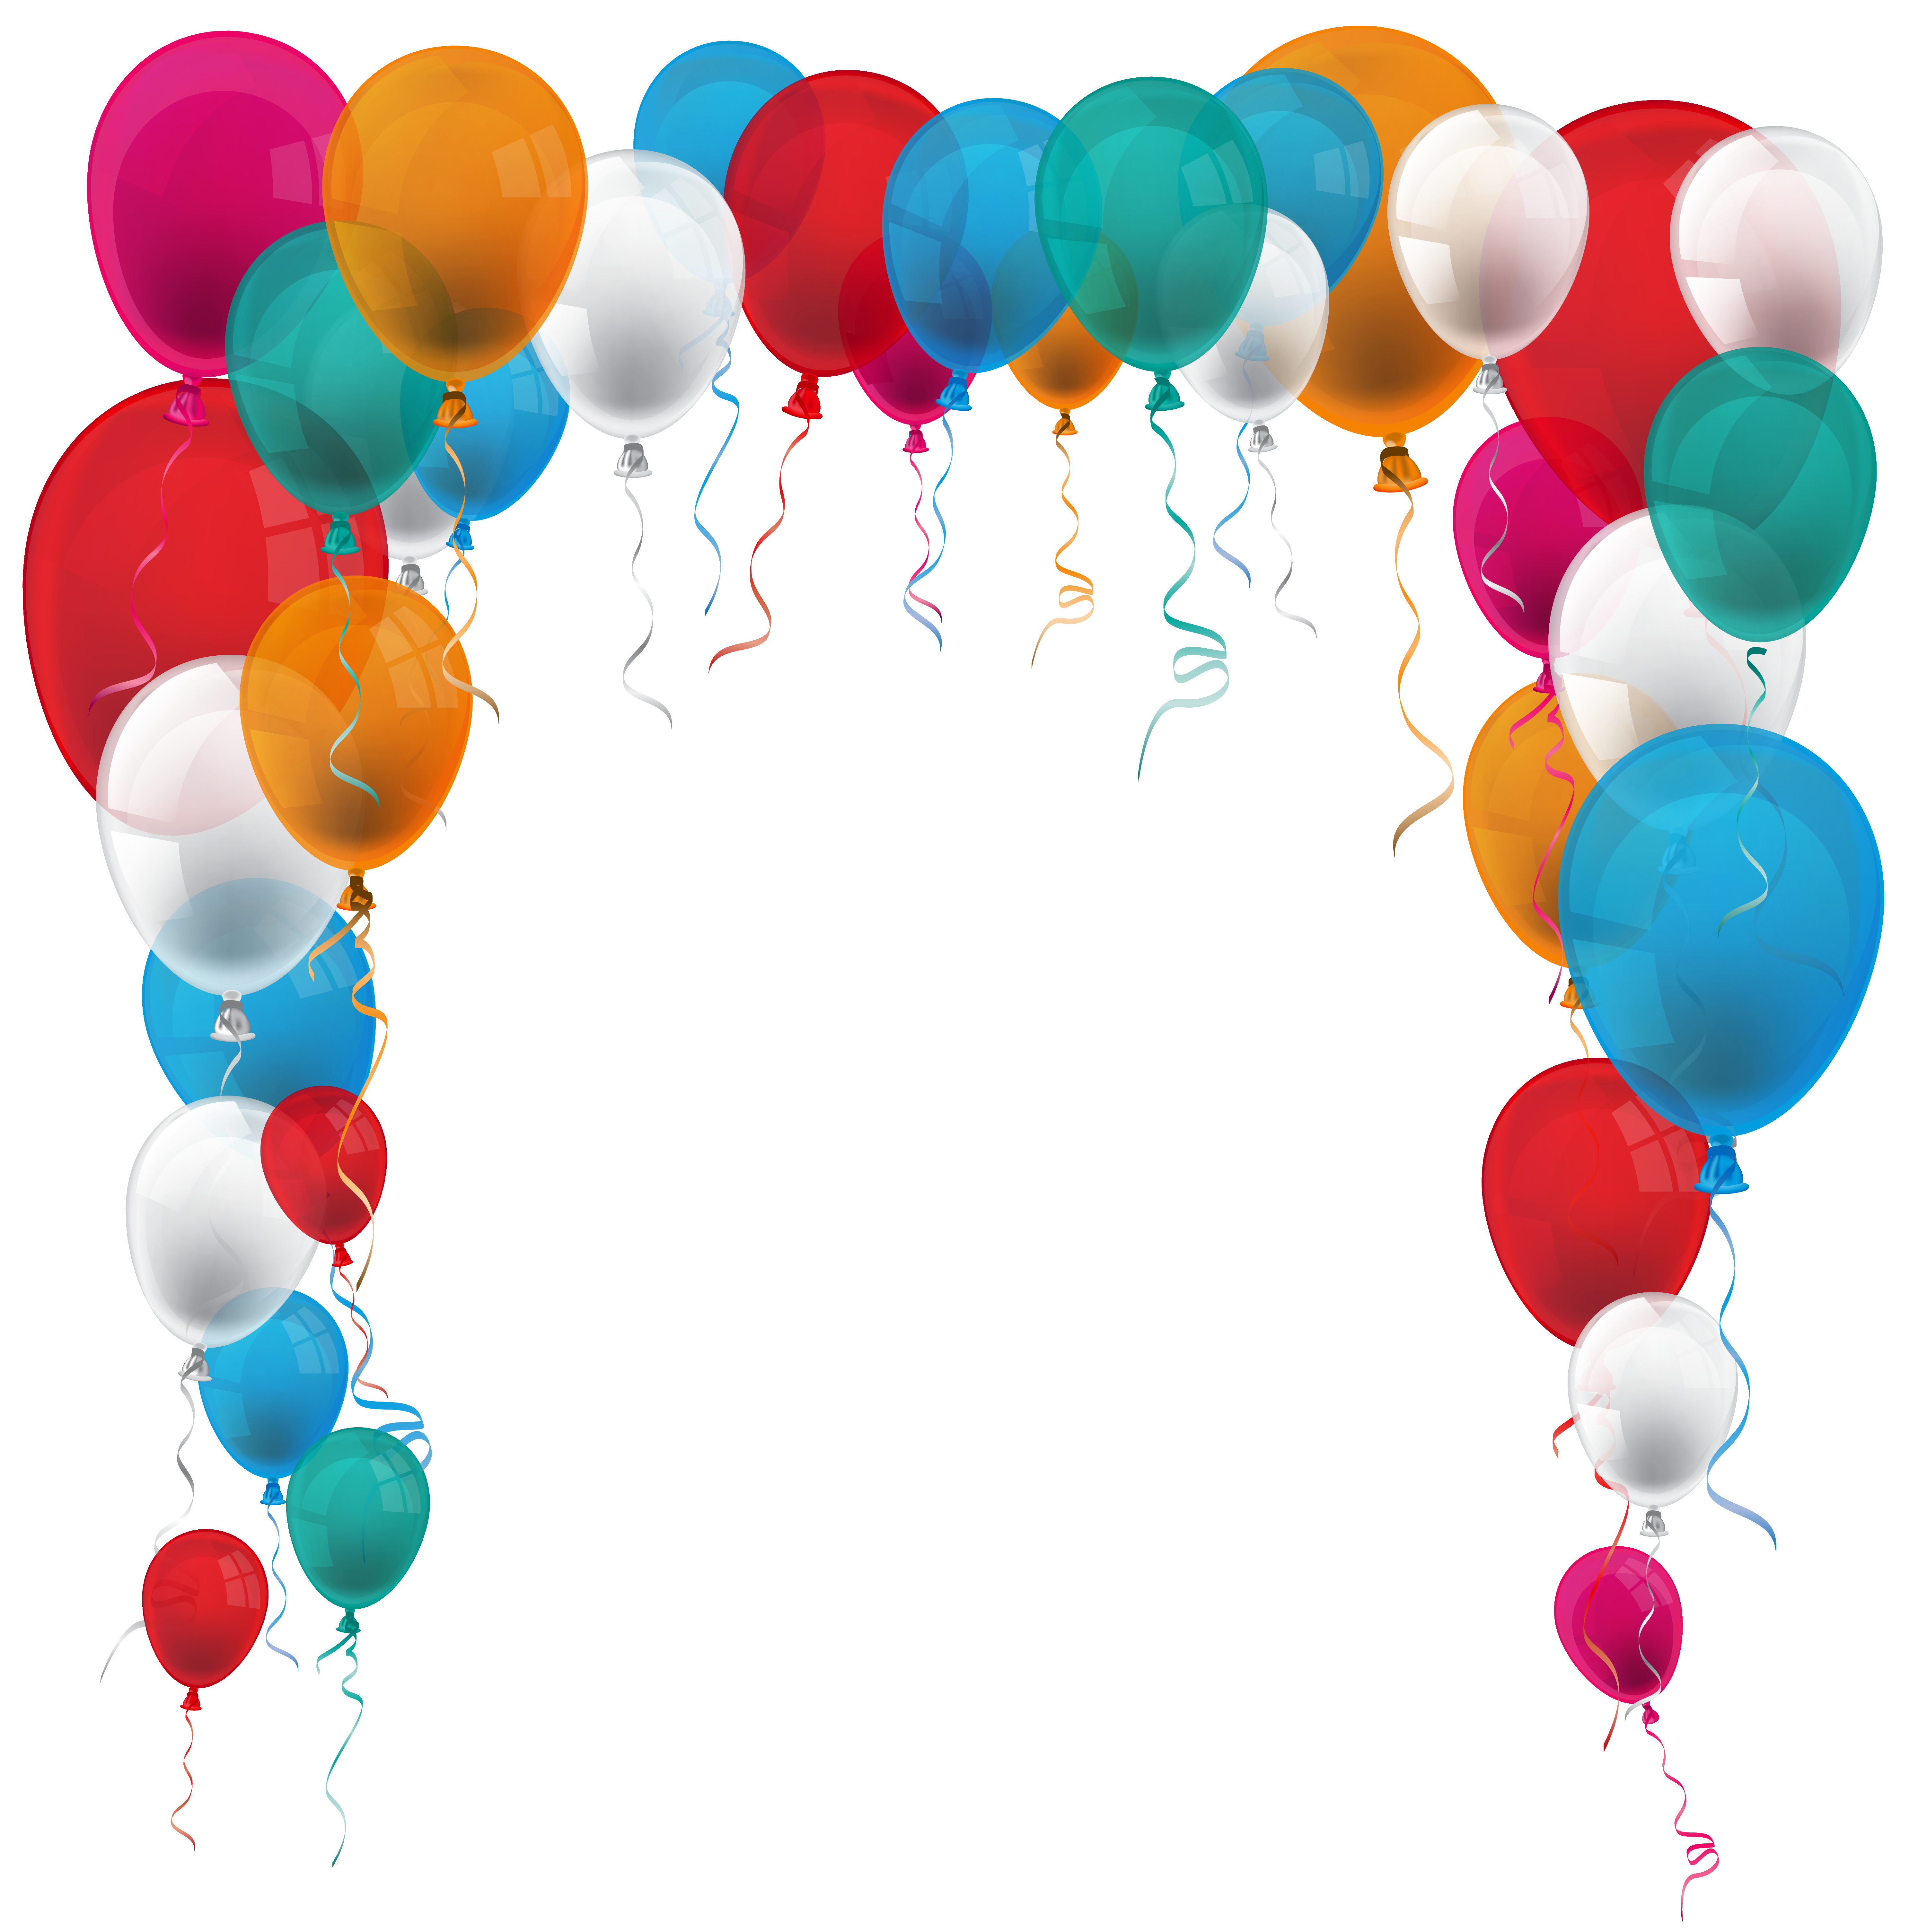 Arch png image gallery. Clipart balloon gate